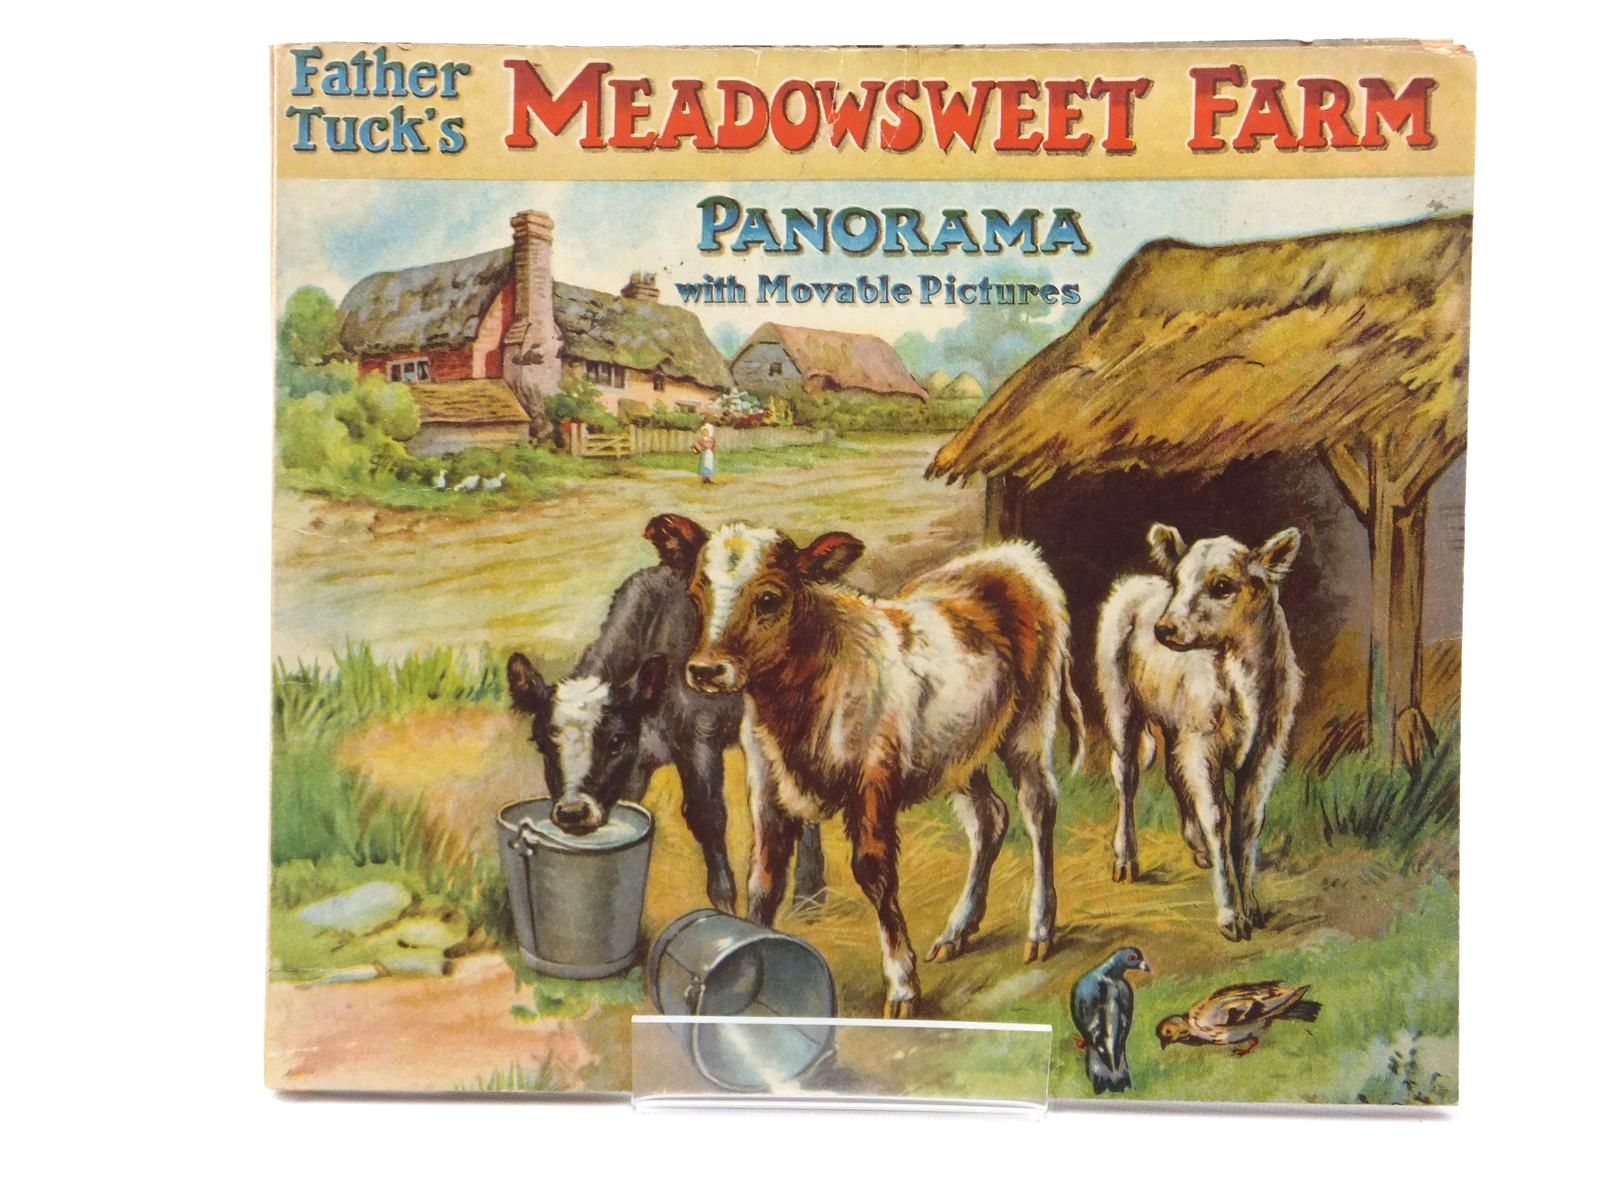 Photo of FATHER TUCK'S MEADOWSWEET FARM published by Raphael Tuck & Sons Ltd. (STOCK CODE: 1317003)  for sale by Stella & Rose's Books